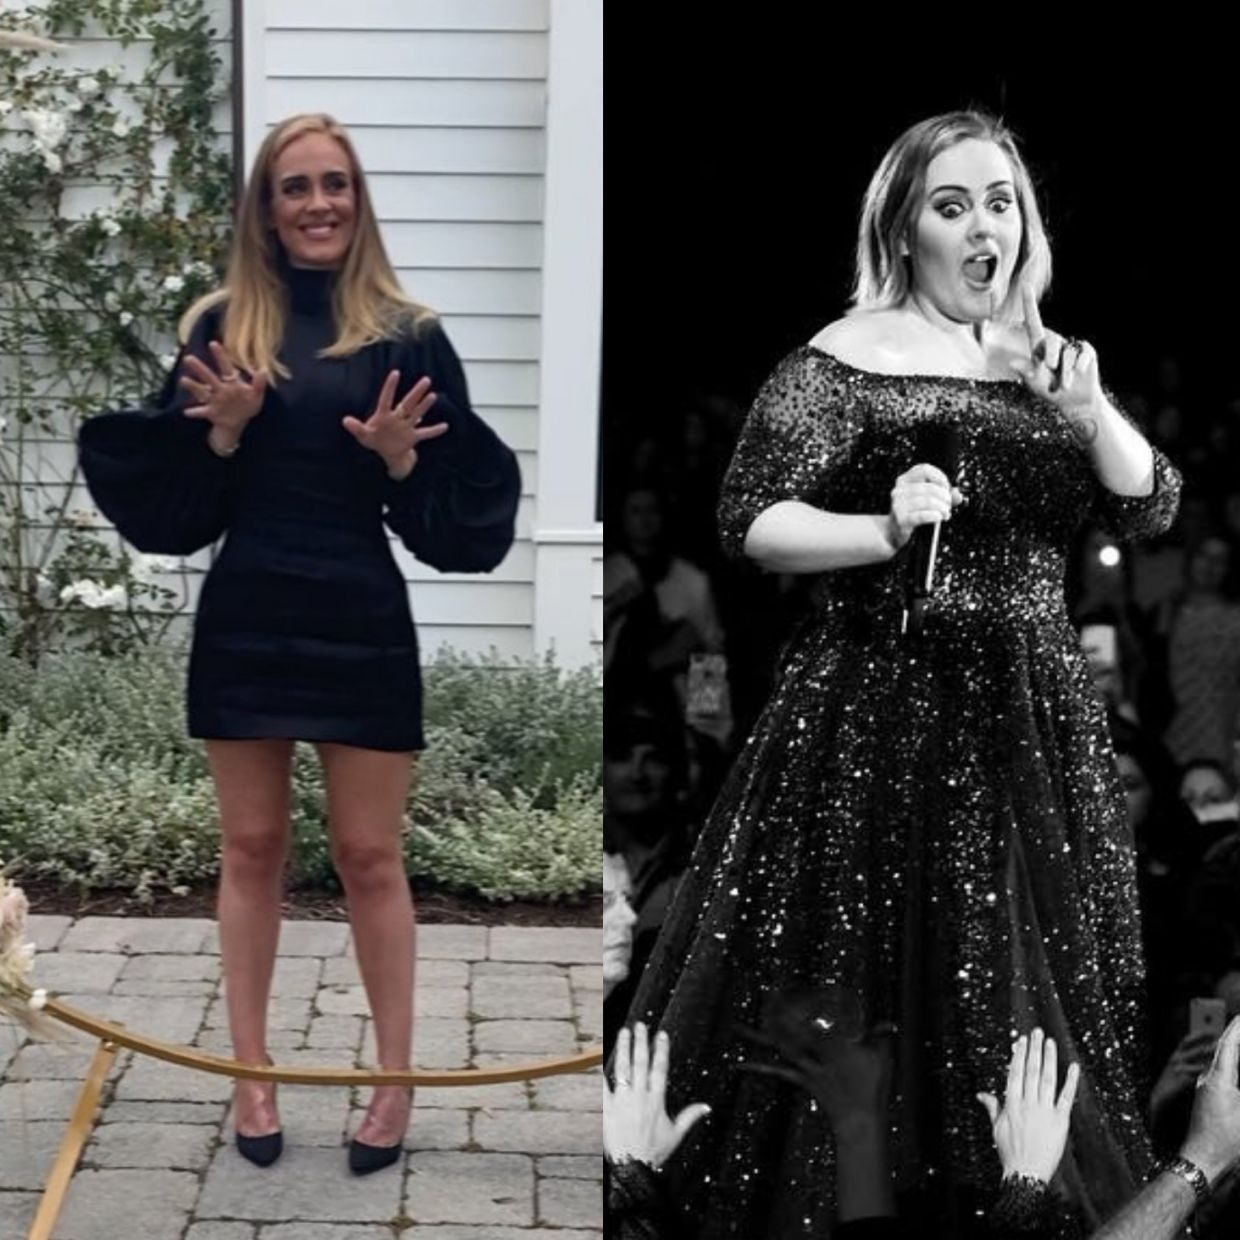 Adele's dramatic physical transformation, as seen from this comparison between her recent photo, and a photo of her at a 2017 concert (right). Photos: Instagram/Adele